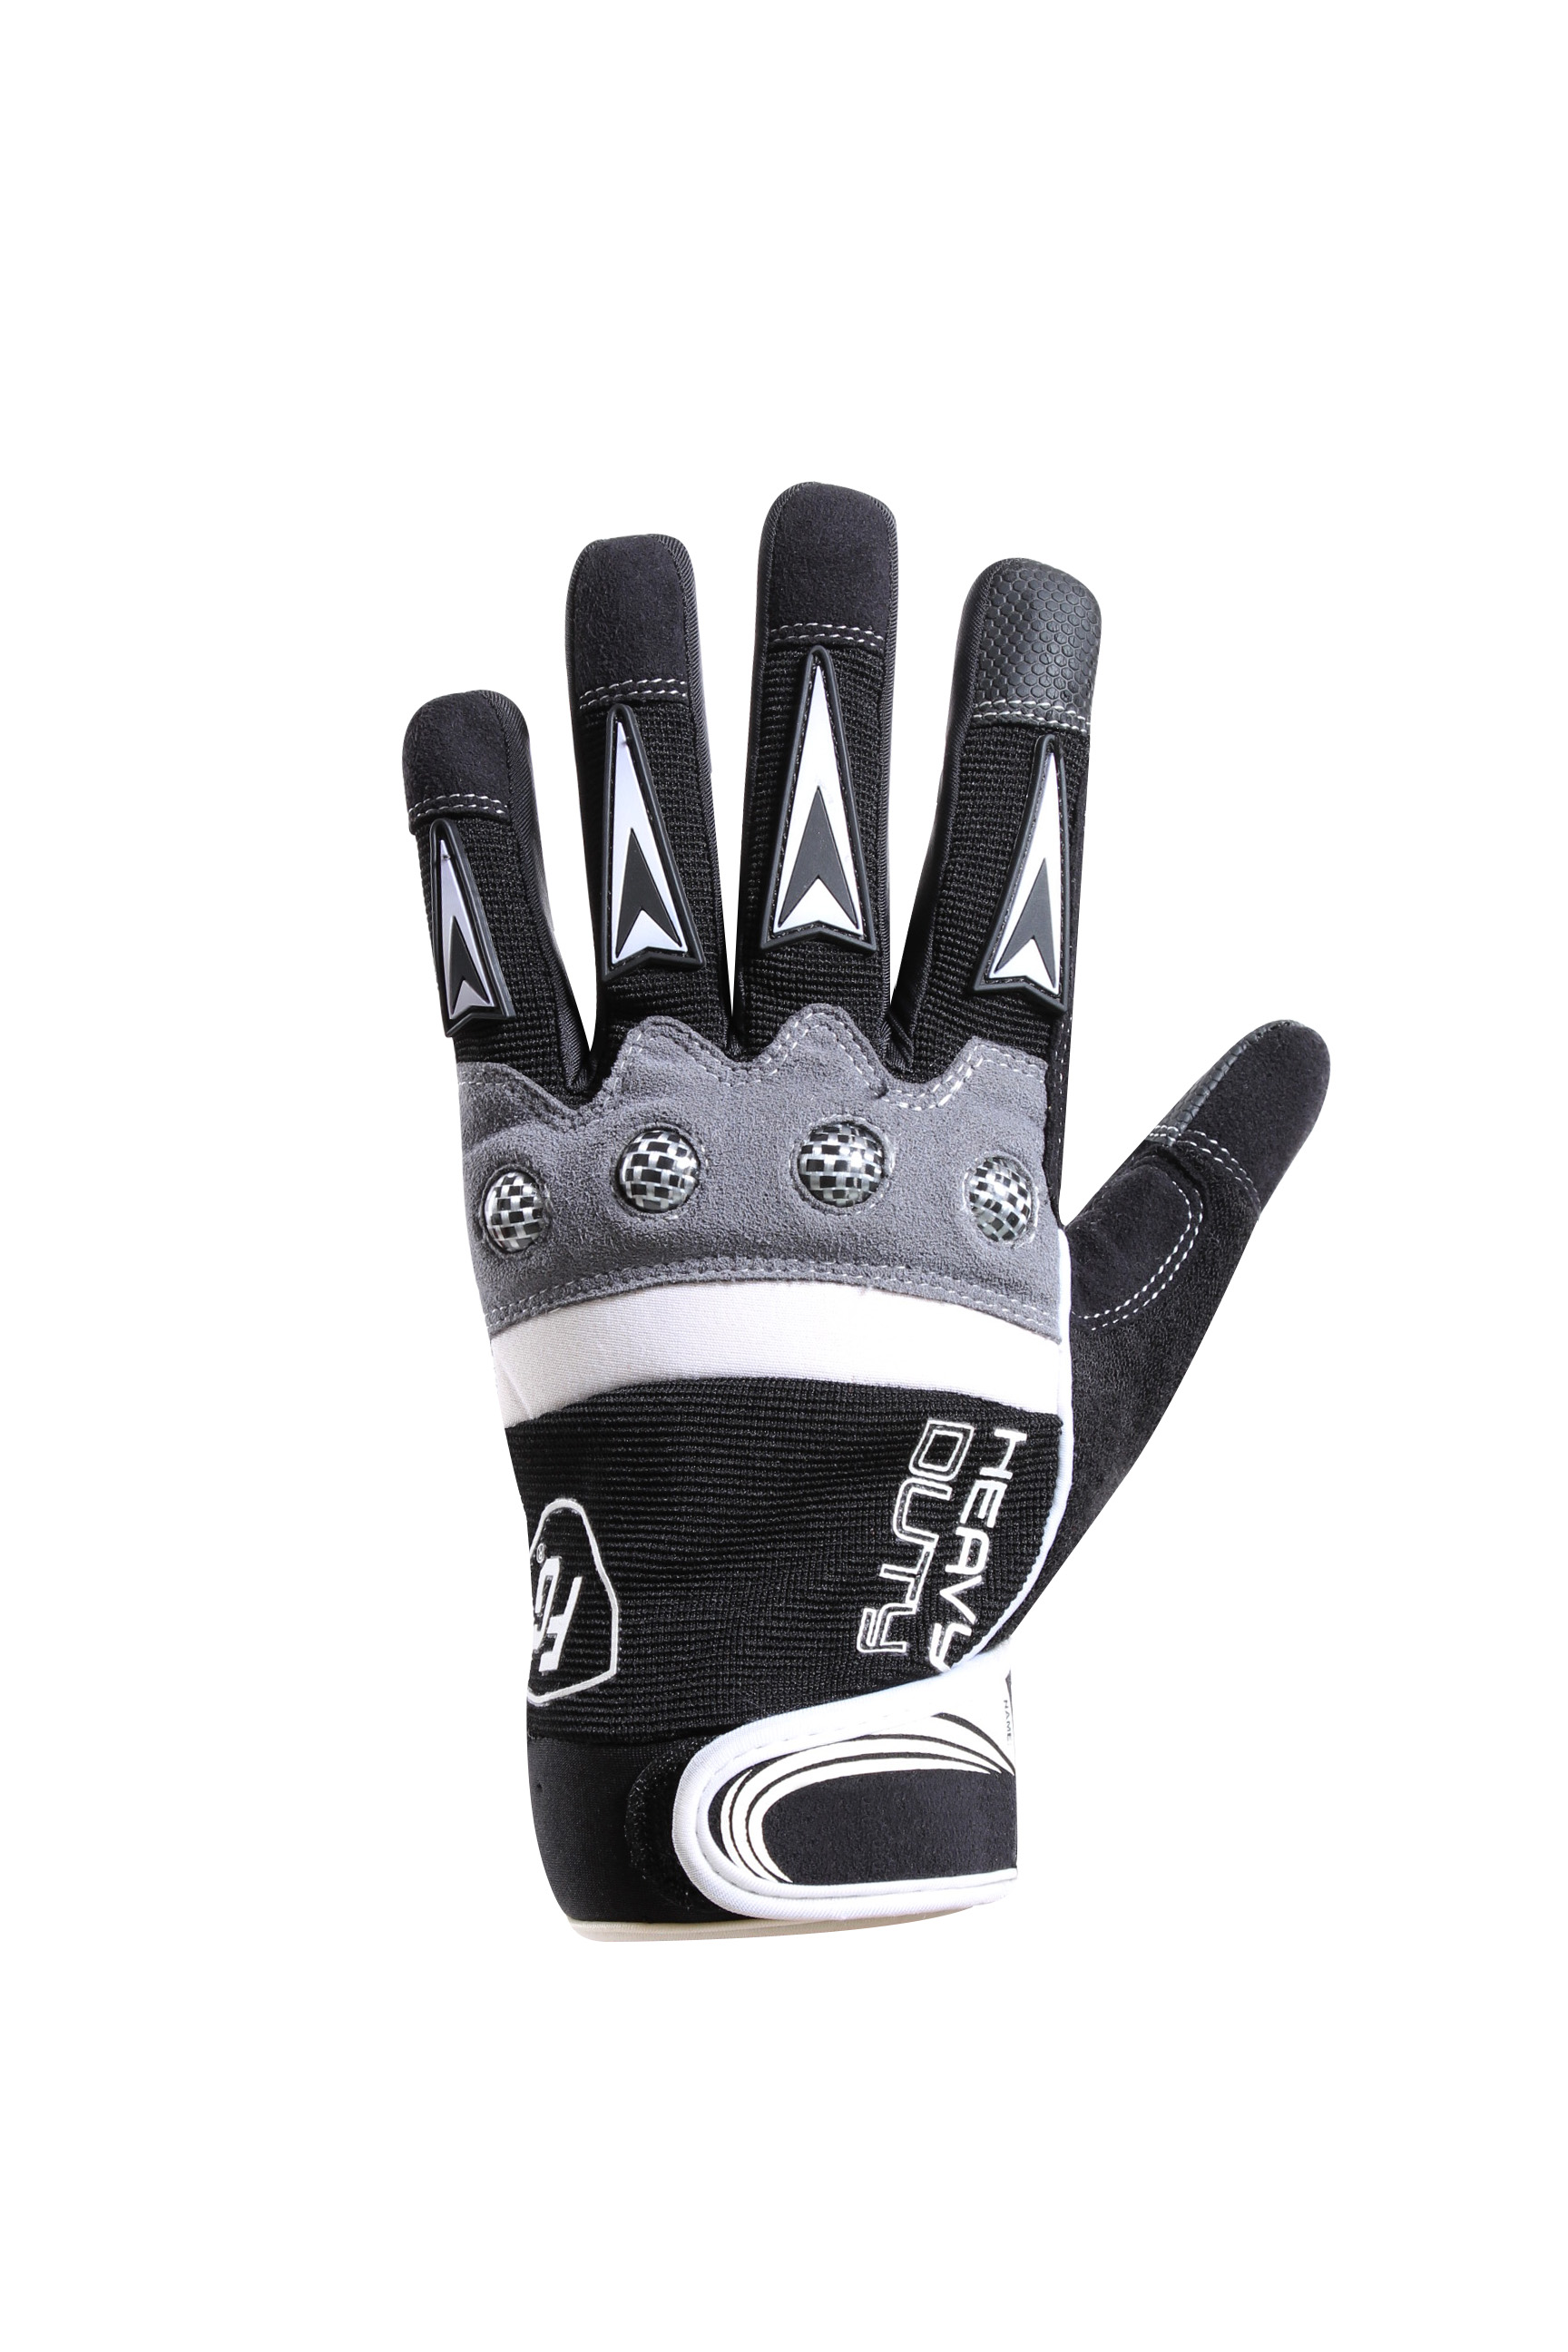 Motorcycling full finger protective gloves